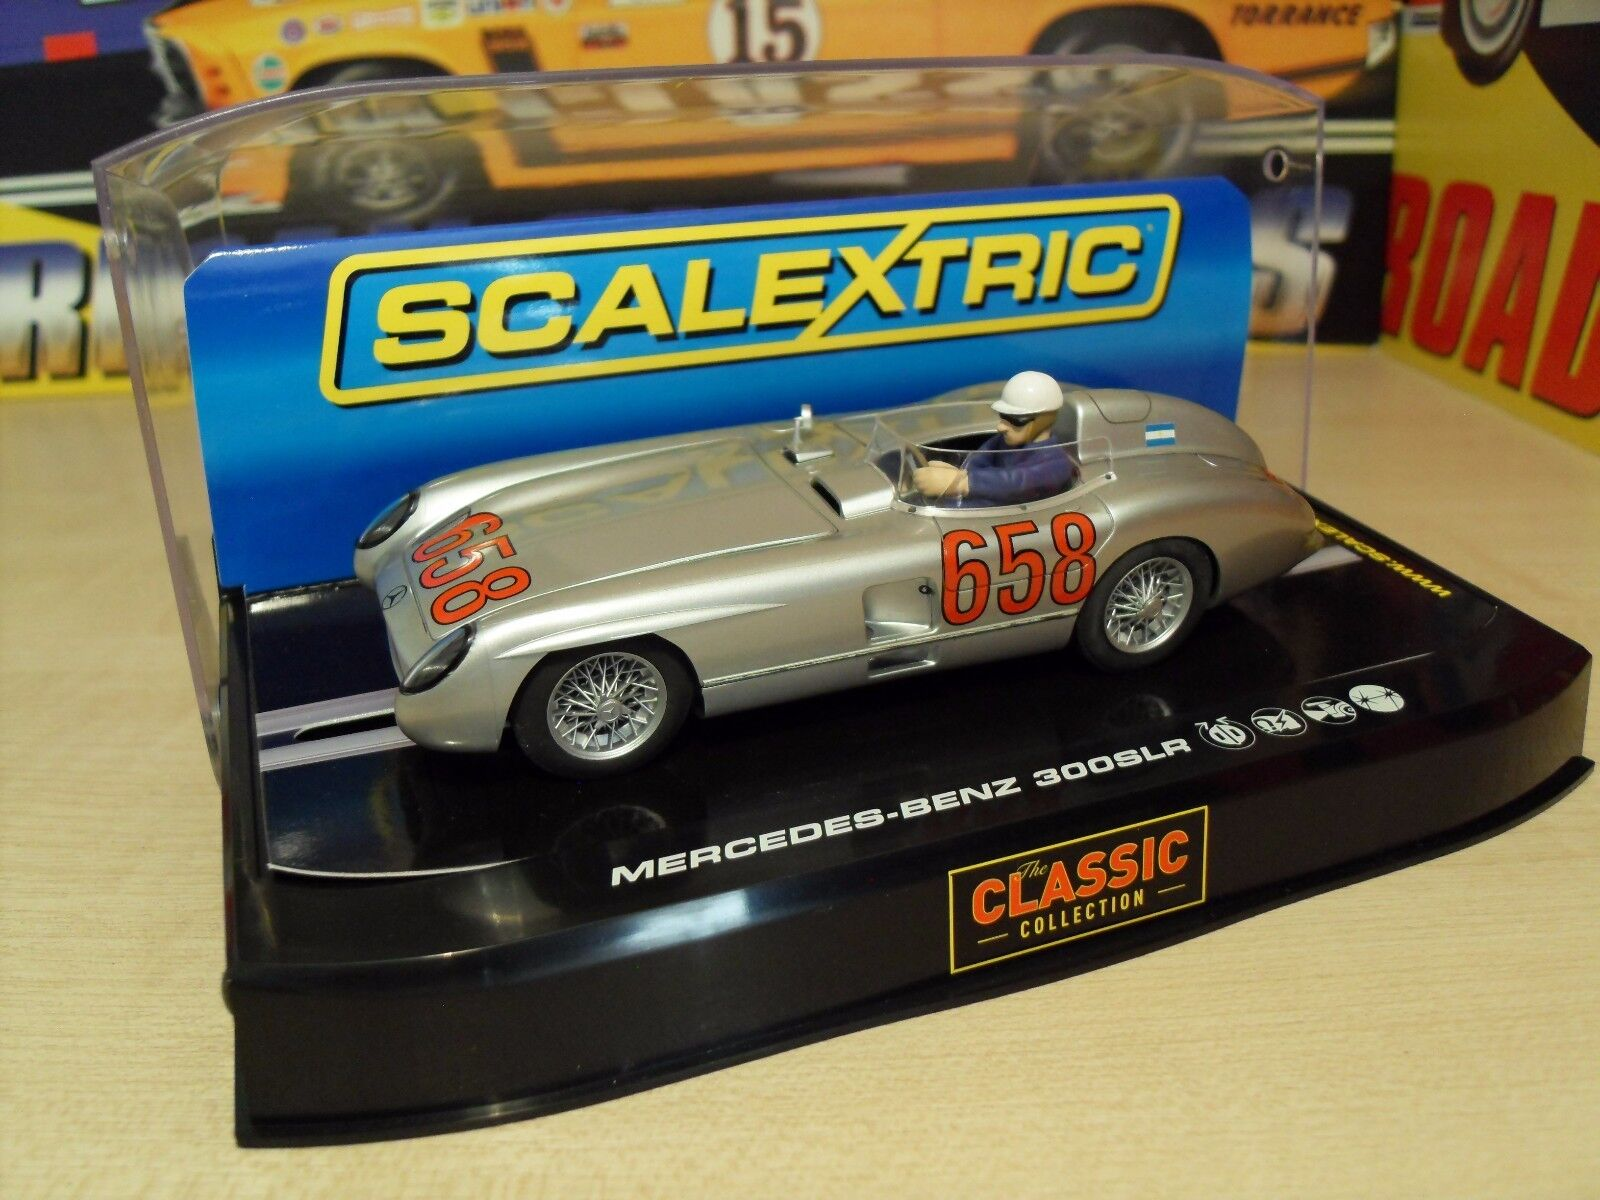 Scalextric C2814 Mercedes Benz 300SLR - '1955 Mille Miglia' - Brand New in Box.